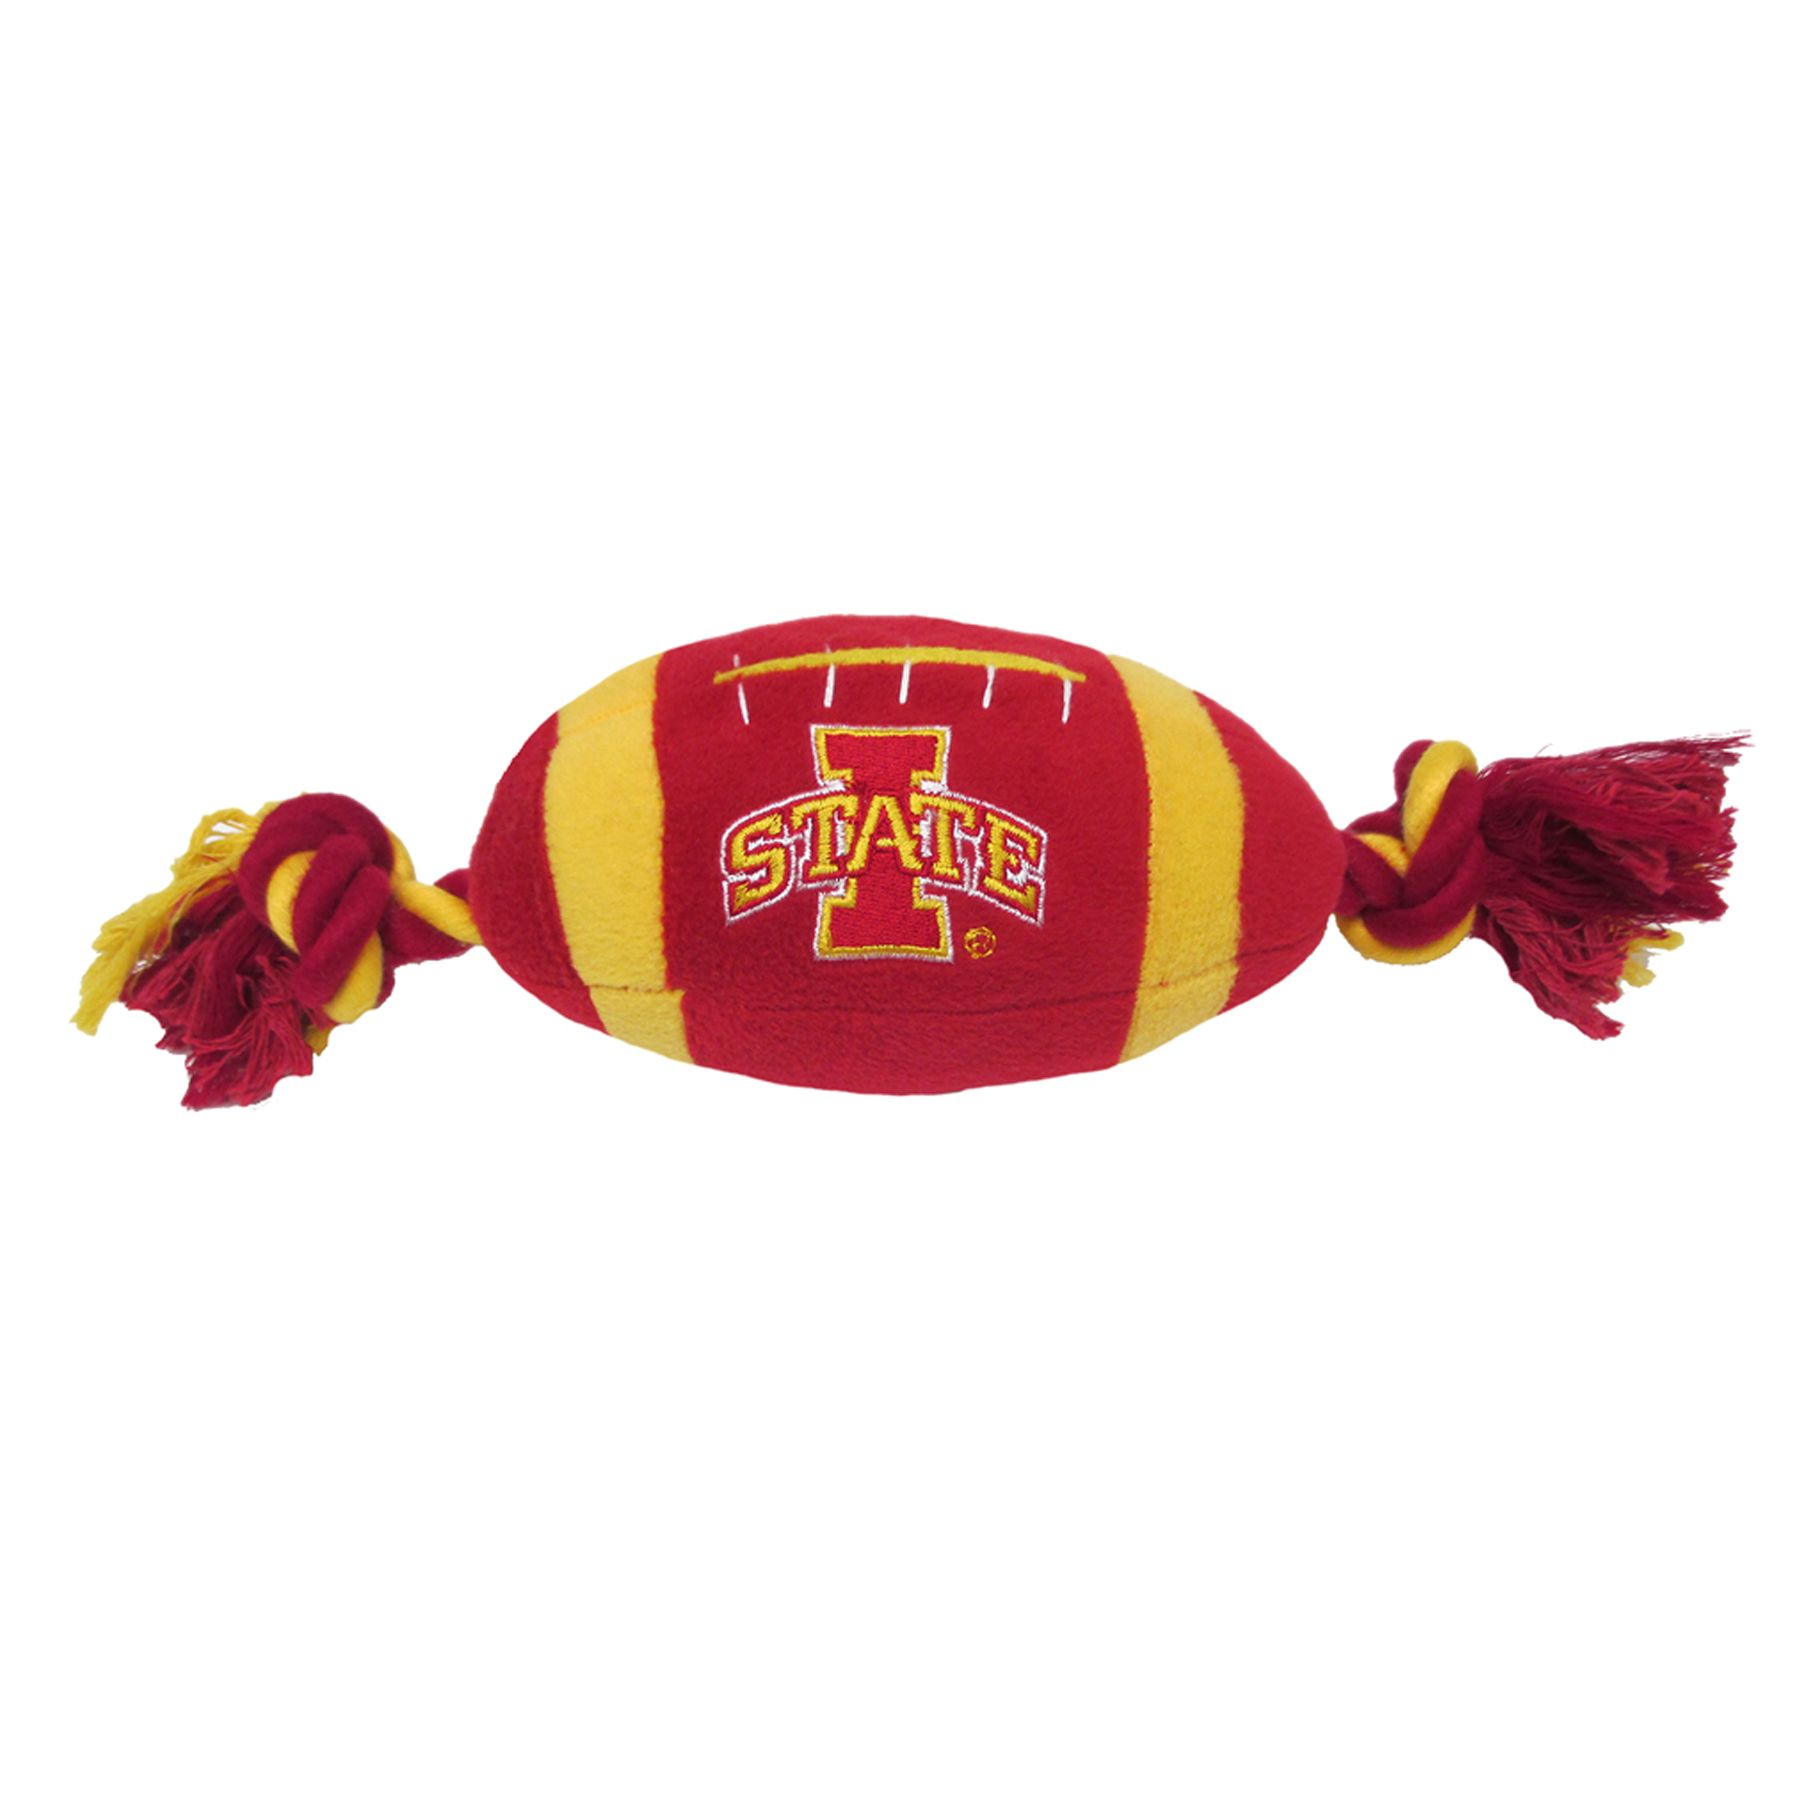 Iowa State University Cyclones Ncaa Football Dog Toy, Pets First 5242636